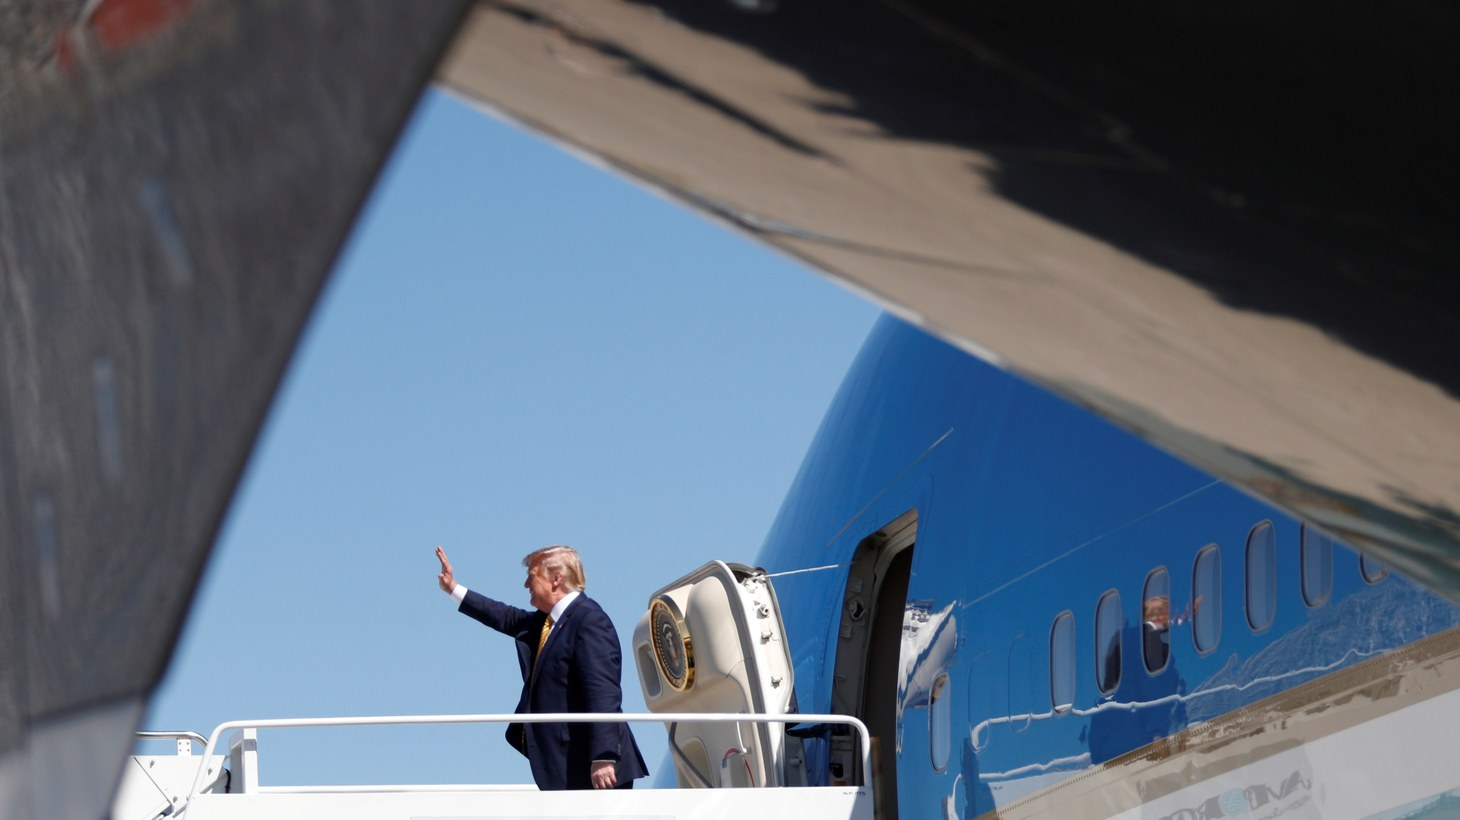 U.S. President Donald Trump descends from Air Force One at Moffett Federal Airfield in Mountain View, California, U.S., September 17, 2019.